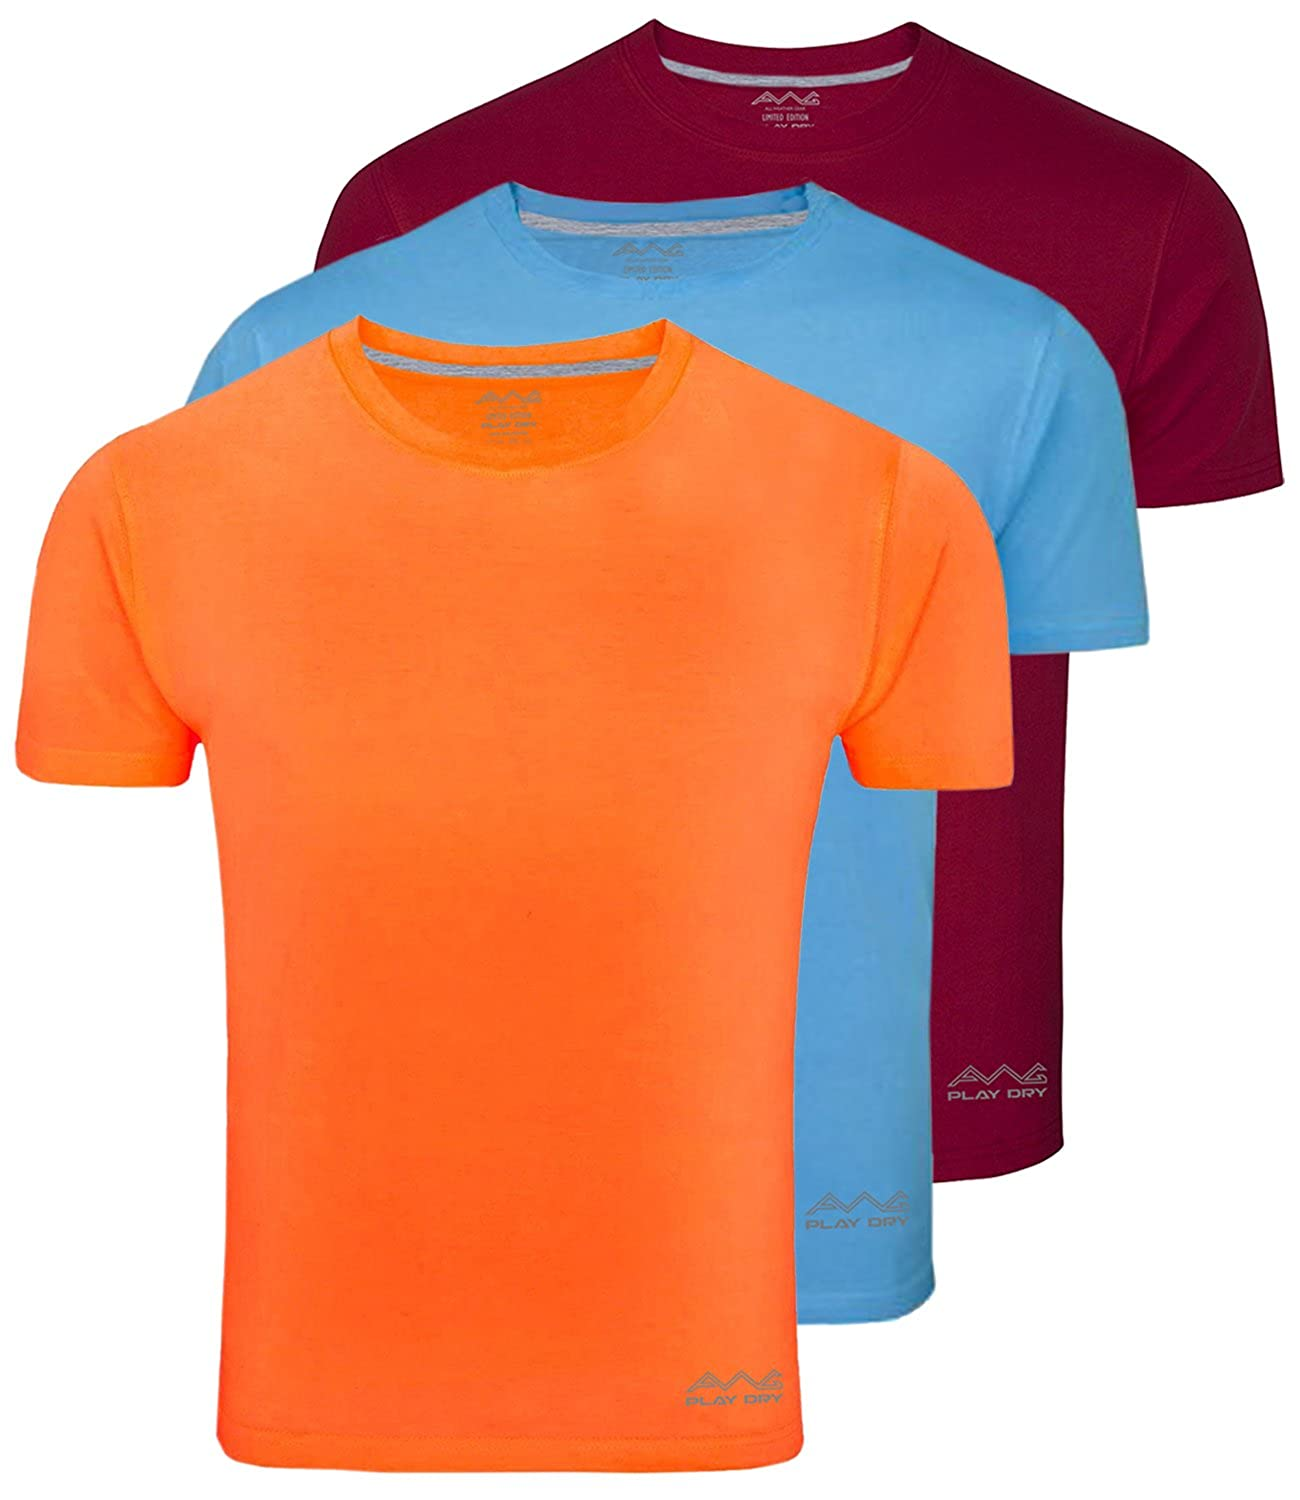 a7fa63e77 AWG - All Weather Gear Men's Dryfit Polyester Round Neck Half Sleeve T- Shirts - Pack of 3: Amazon.in: Clothing & Accessories